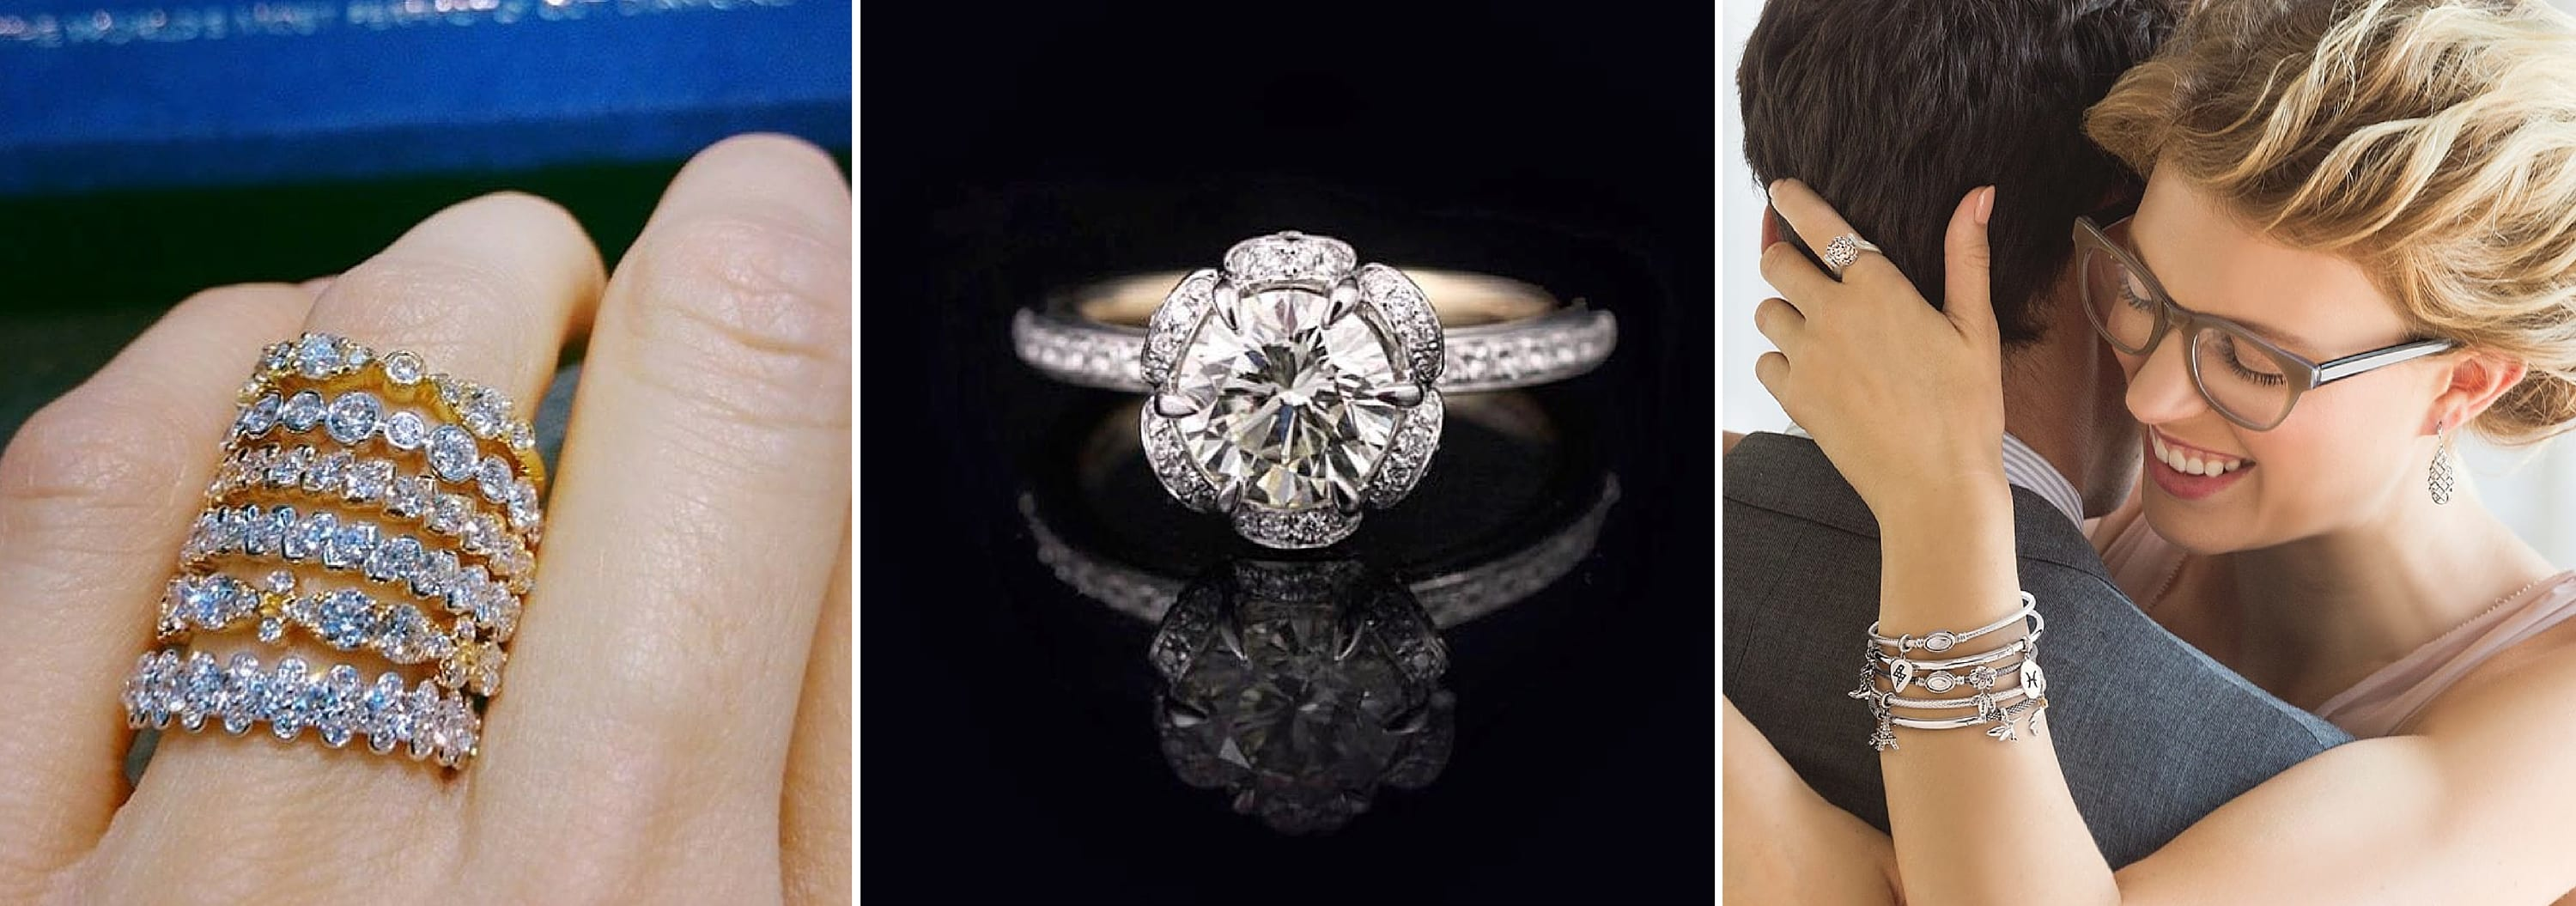 Plainfield Jewelry - diamond Rings, Engagement ring, Bangles & more